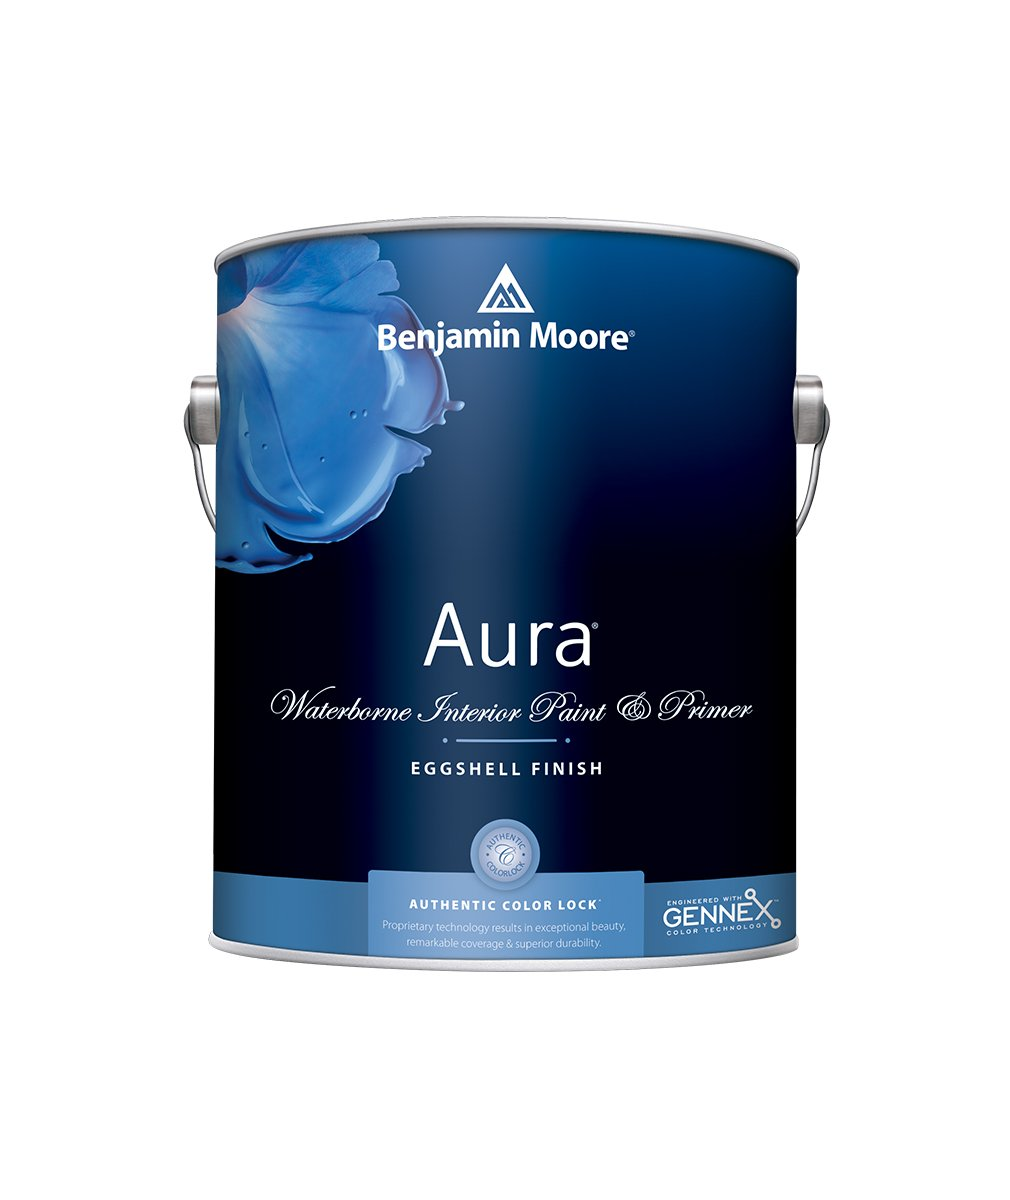 Benjamin Moore Aura® Interior Paint in a Matte finish at Harrison Paint Co. in Shreveport, Bossier City and West Monroe, LA.